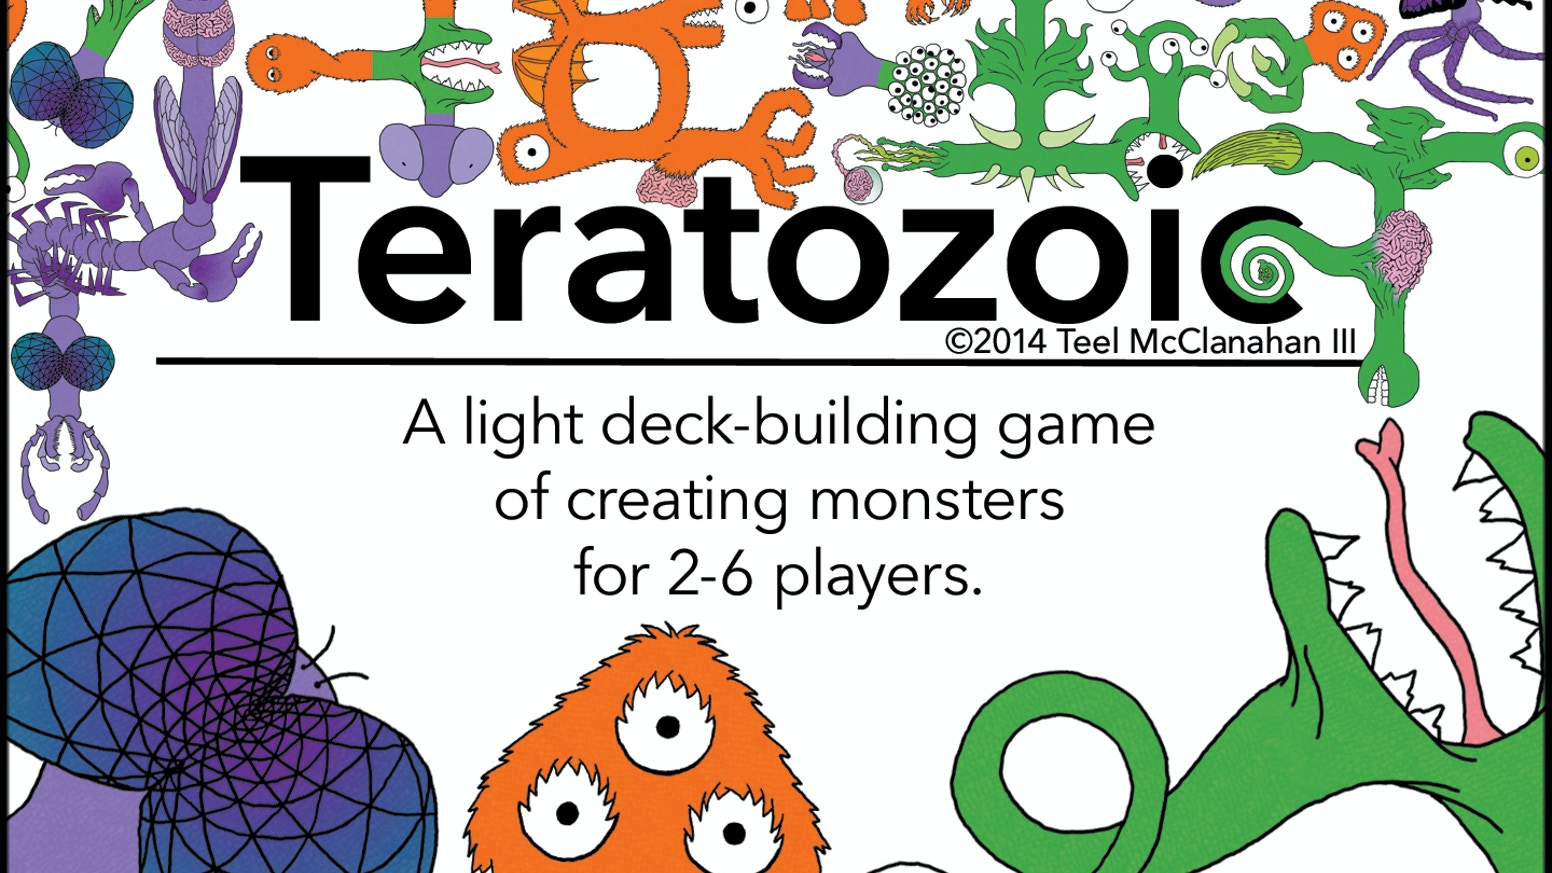 A light deck-building game for 2-6 players; outsmart your opponents, hone your gene pool, and dominate the age of monsters!